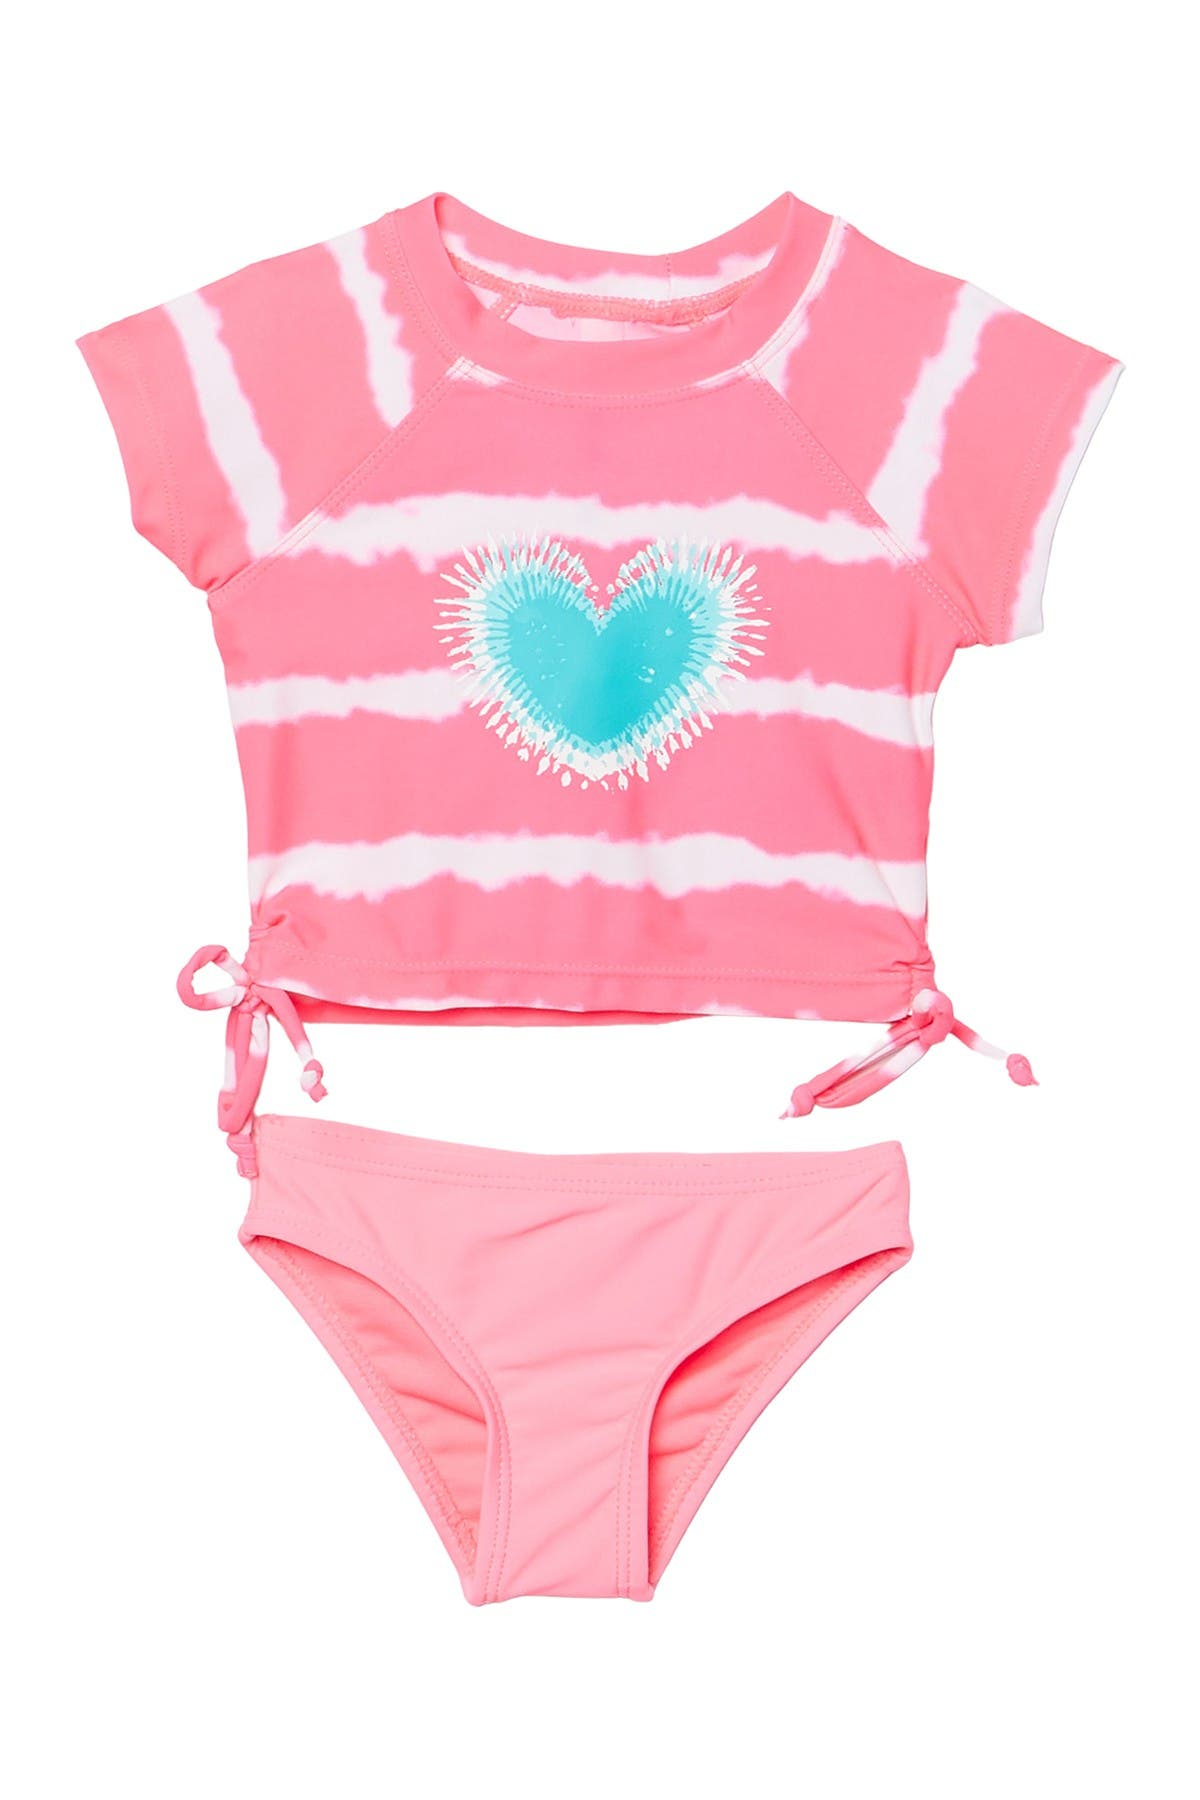 Image of Kensie Girl Tie Dye Stripe Print Rashguard 2-Piece Set